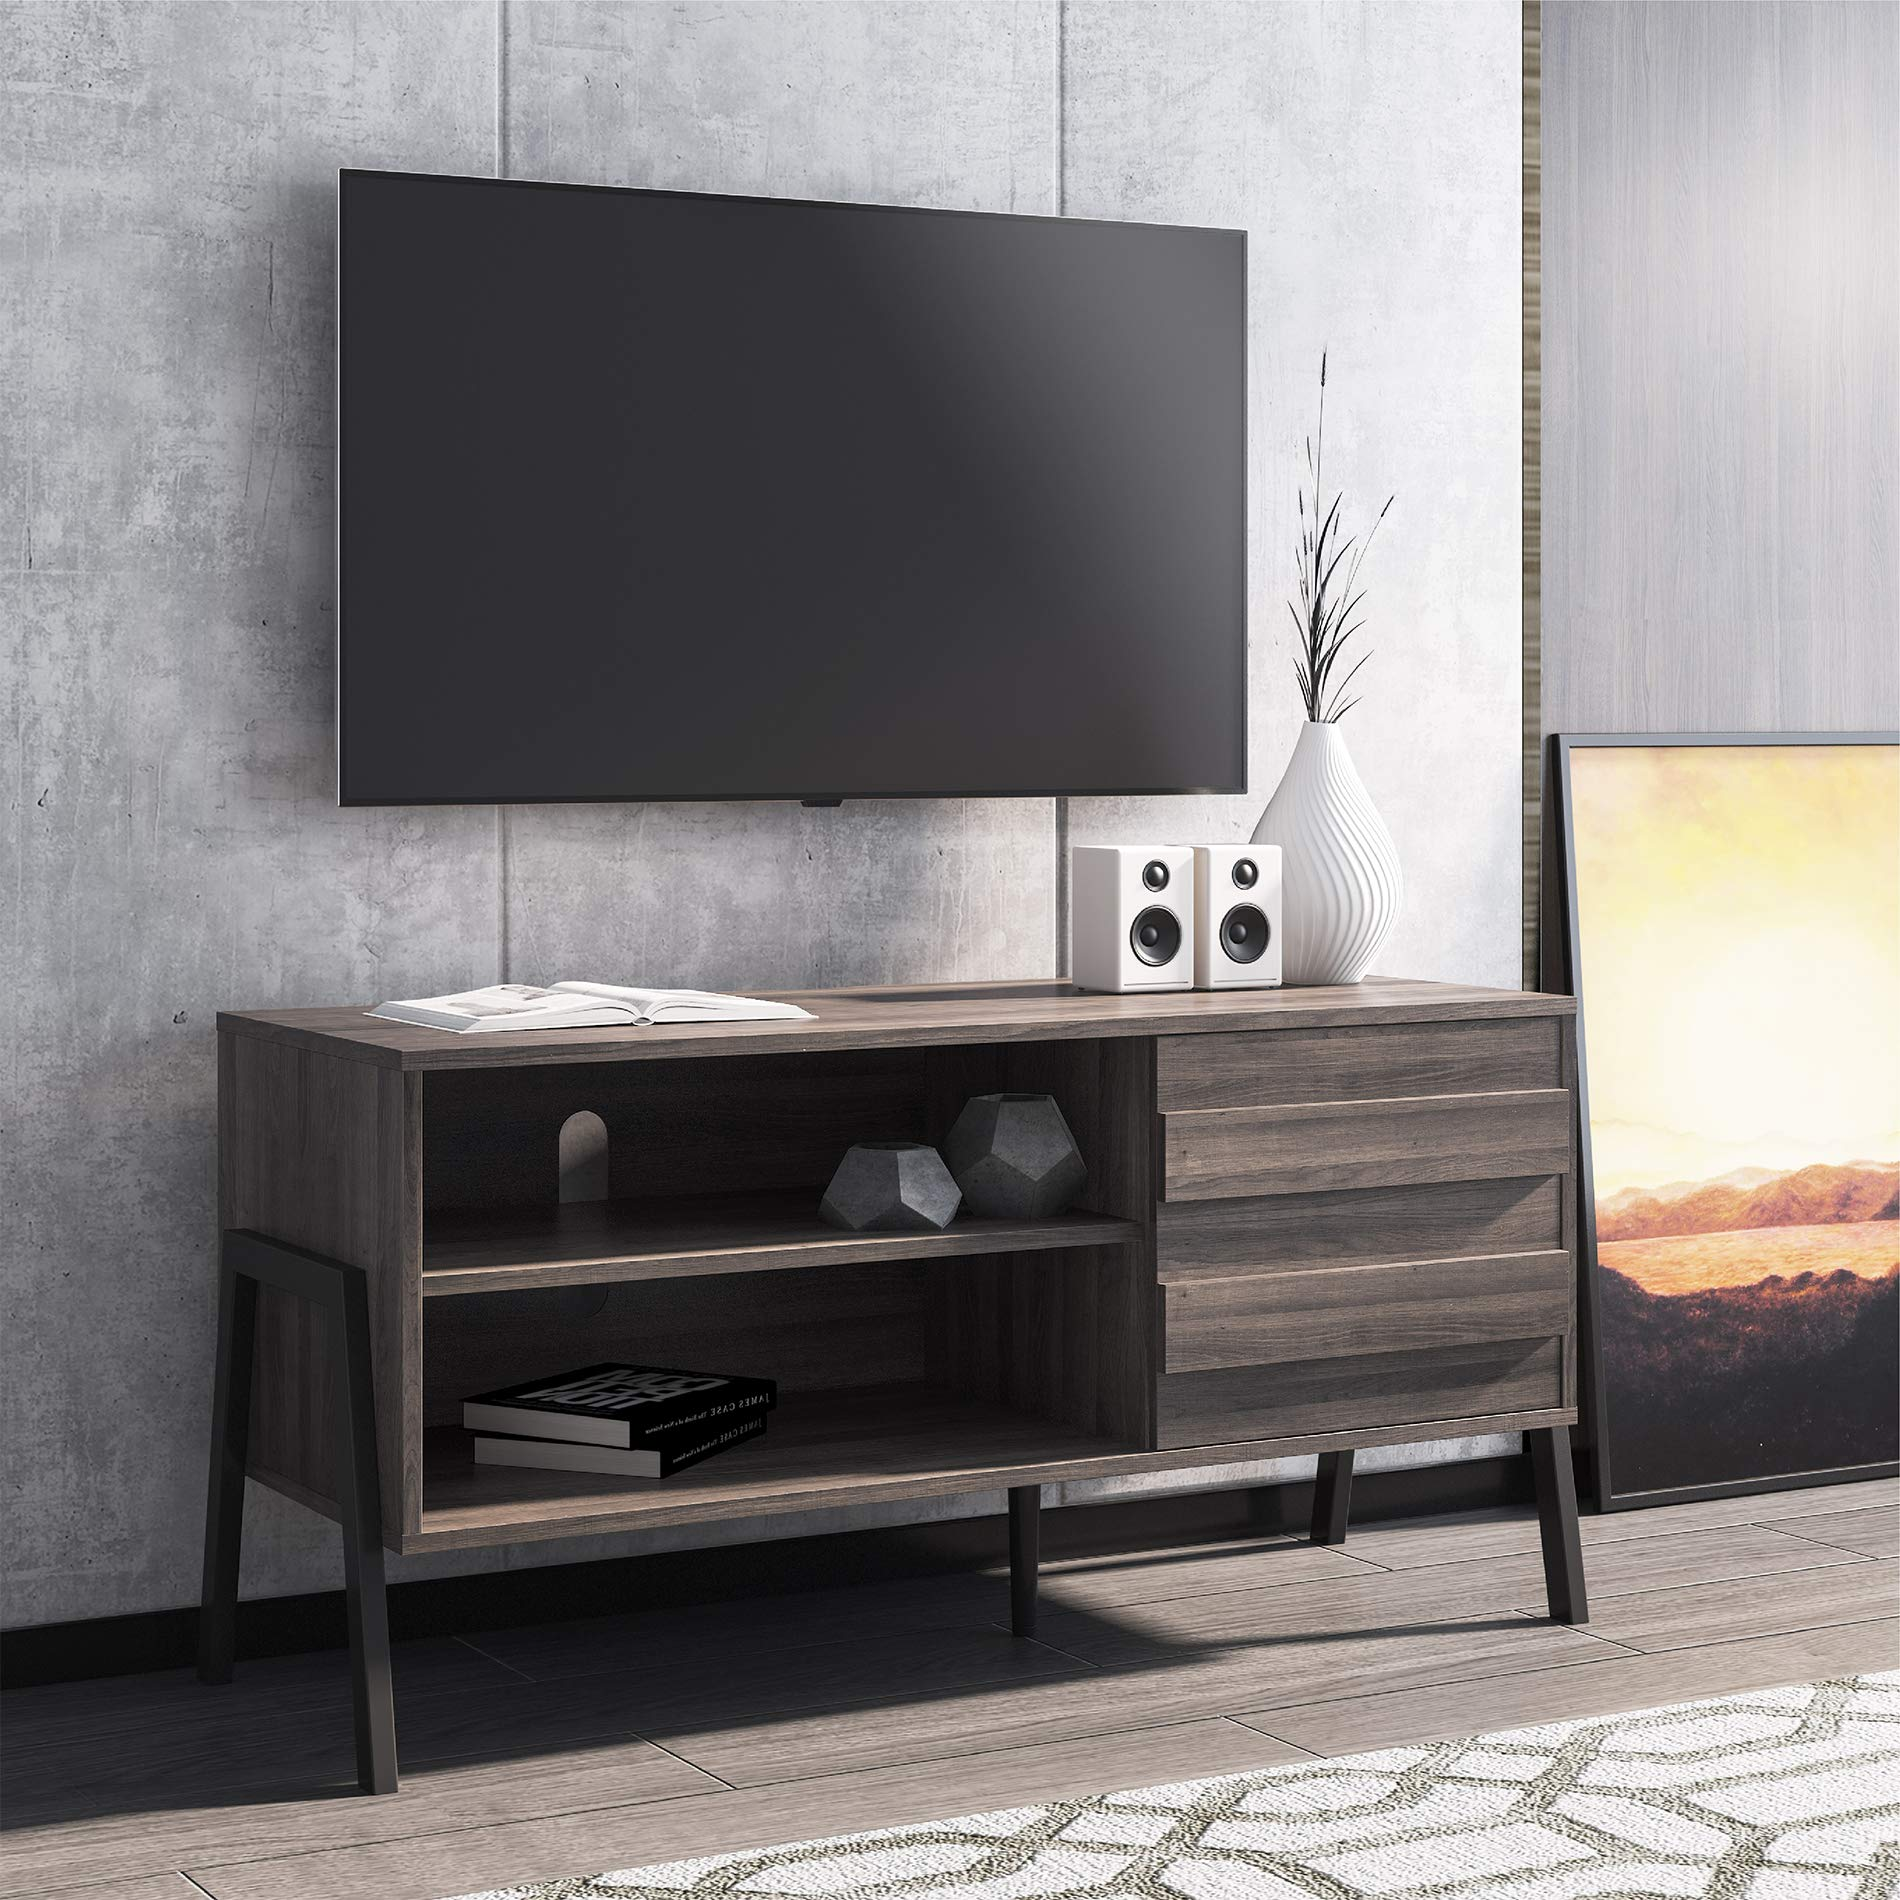 Fitueyes Mid Century Modern Tv Stand For 50 Flat Screen Tv With Push To Open Door Retro Entertainment Center For Living Room Wood Media Console With Storage Rustic Oak